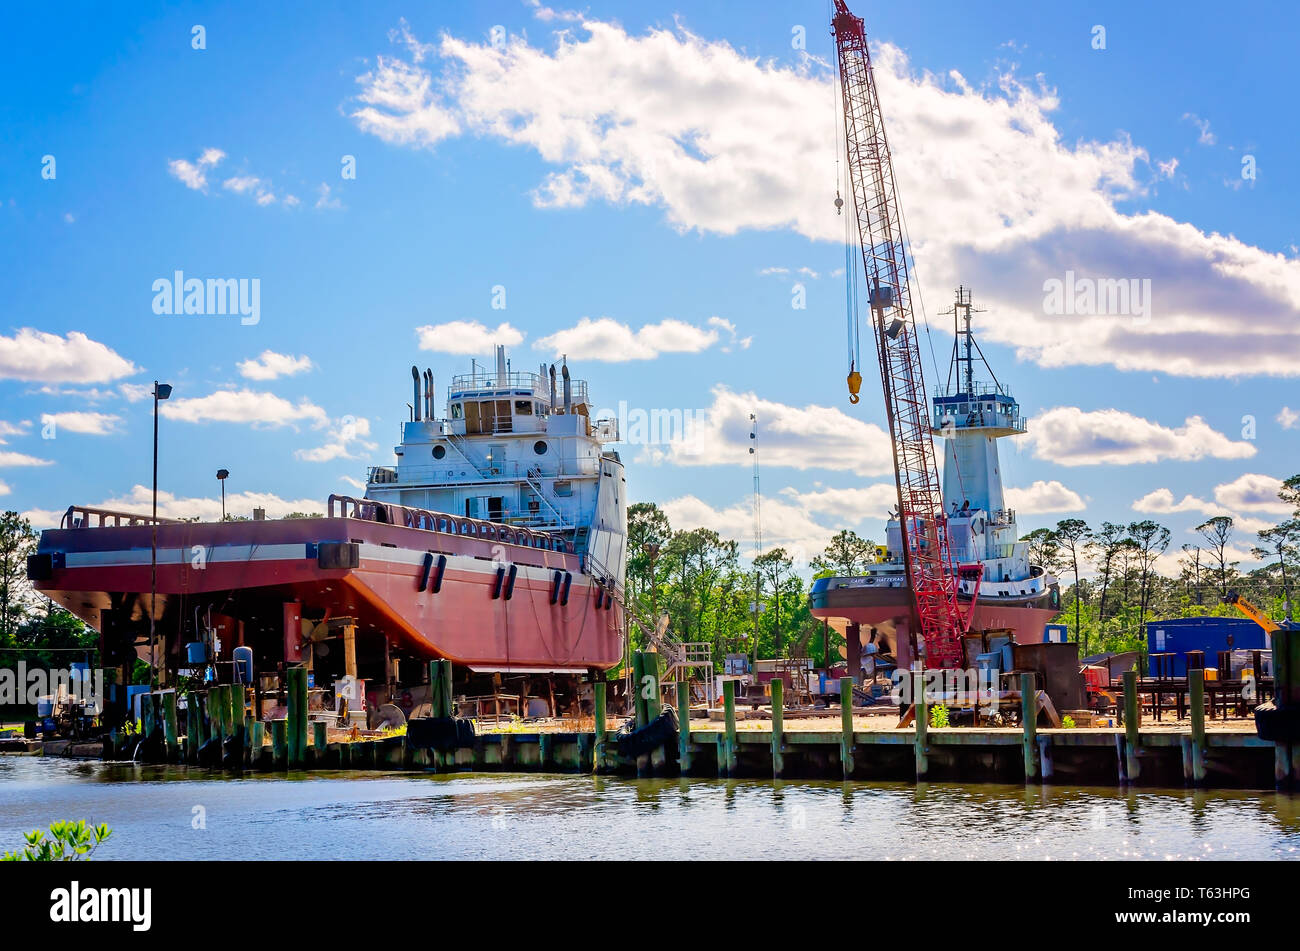 Offshore supply vessels sit at a shipyard in dry dock for repairs, April 14, 2019, in Coden, Alabama. - Stock Image